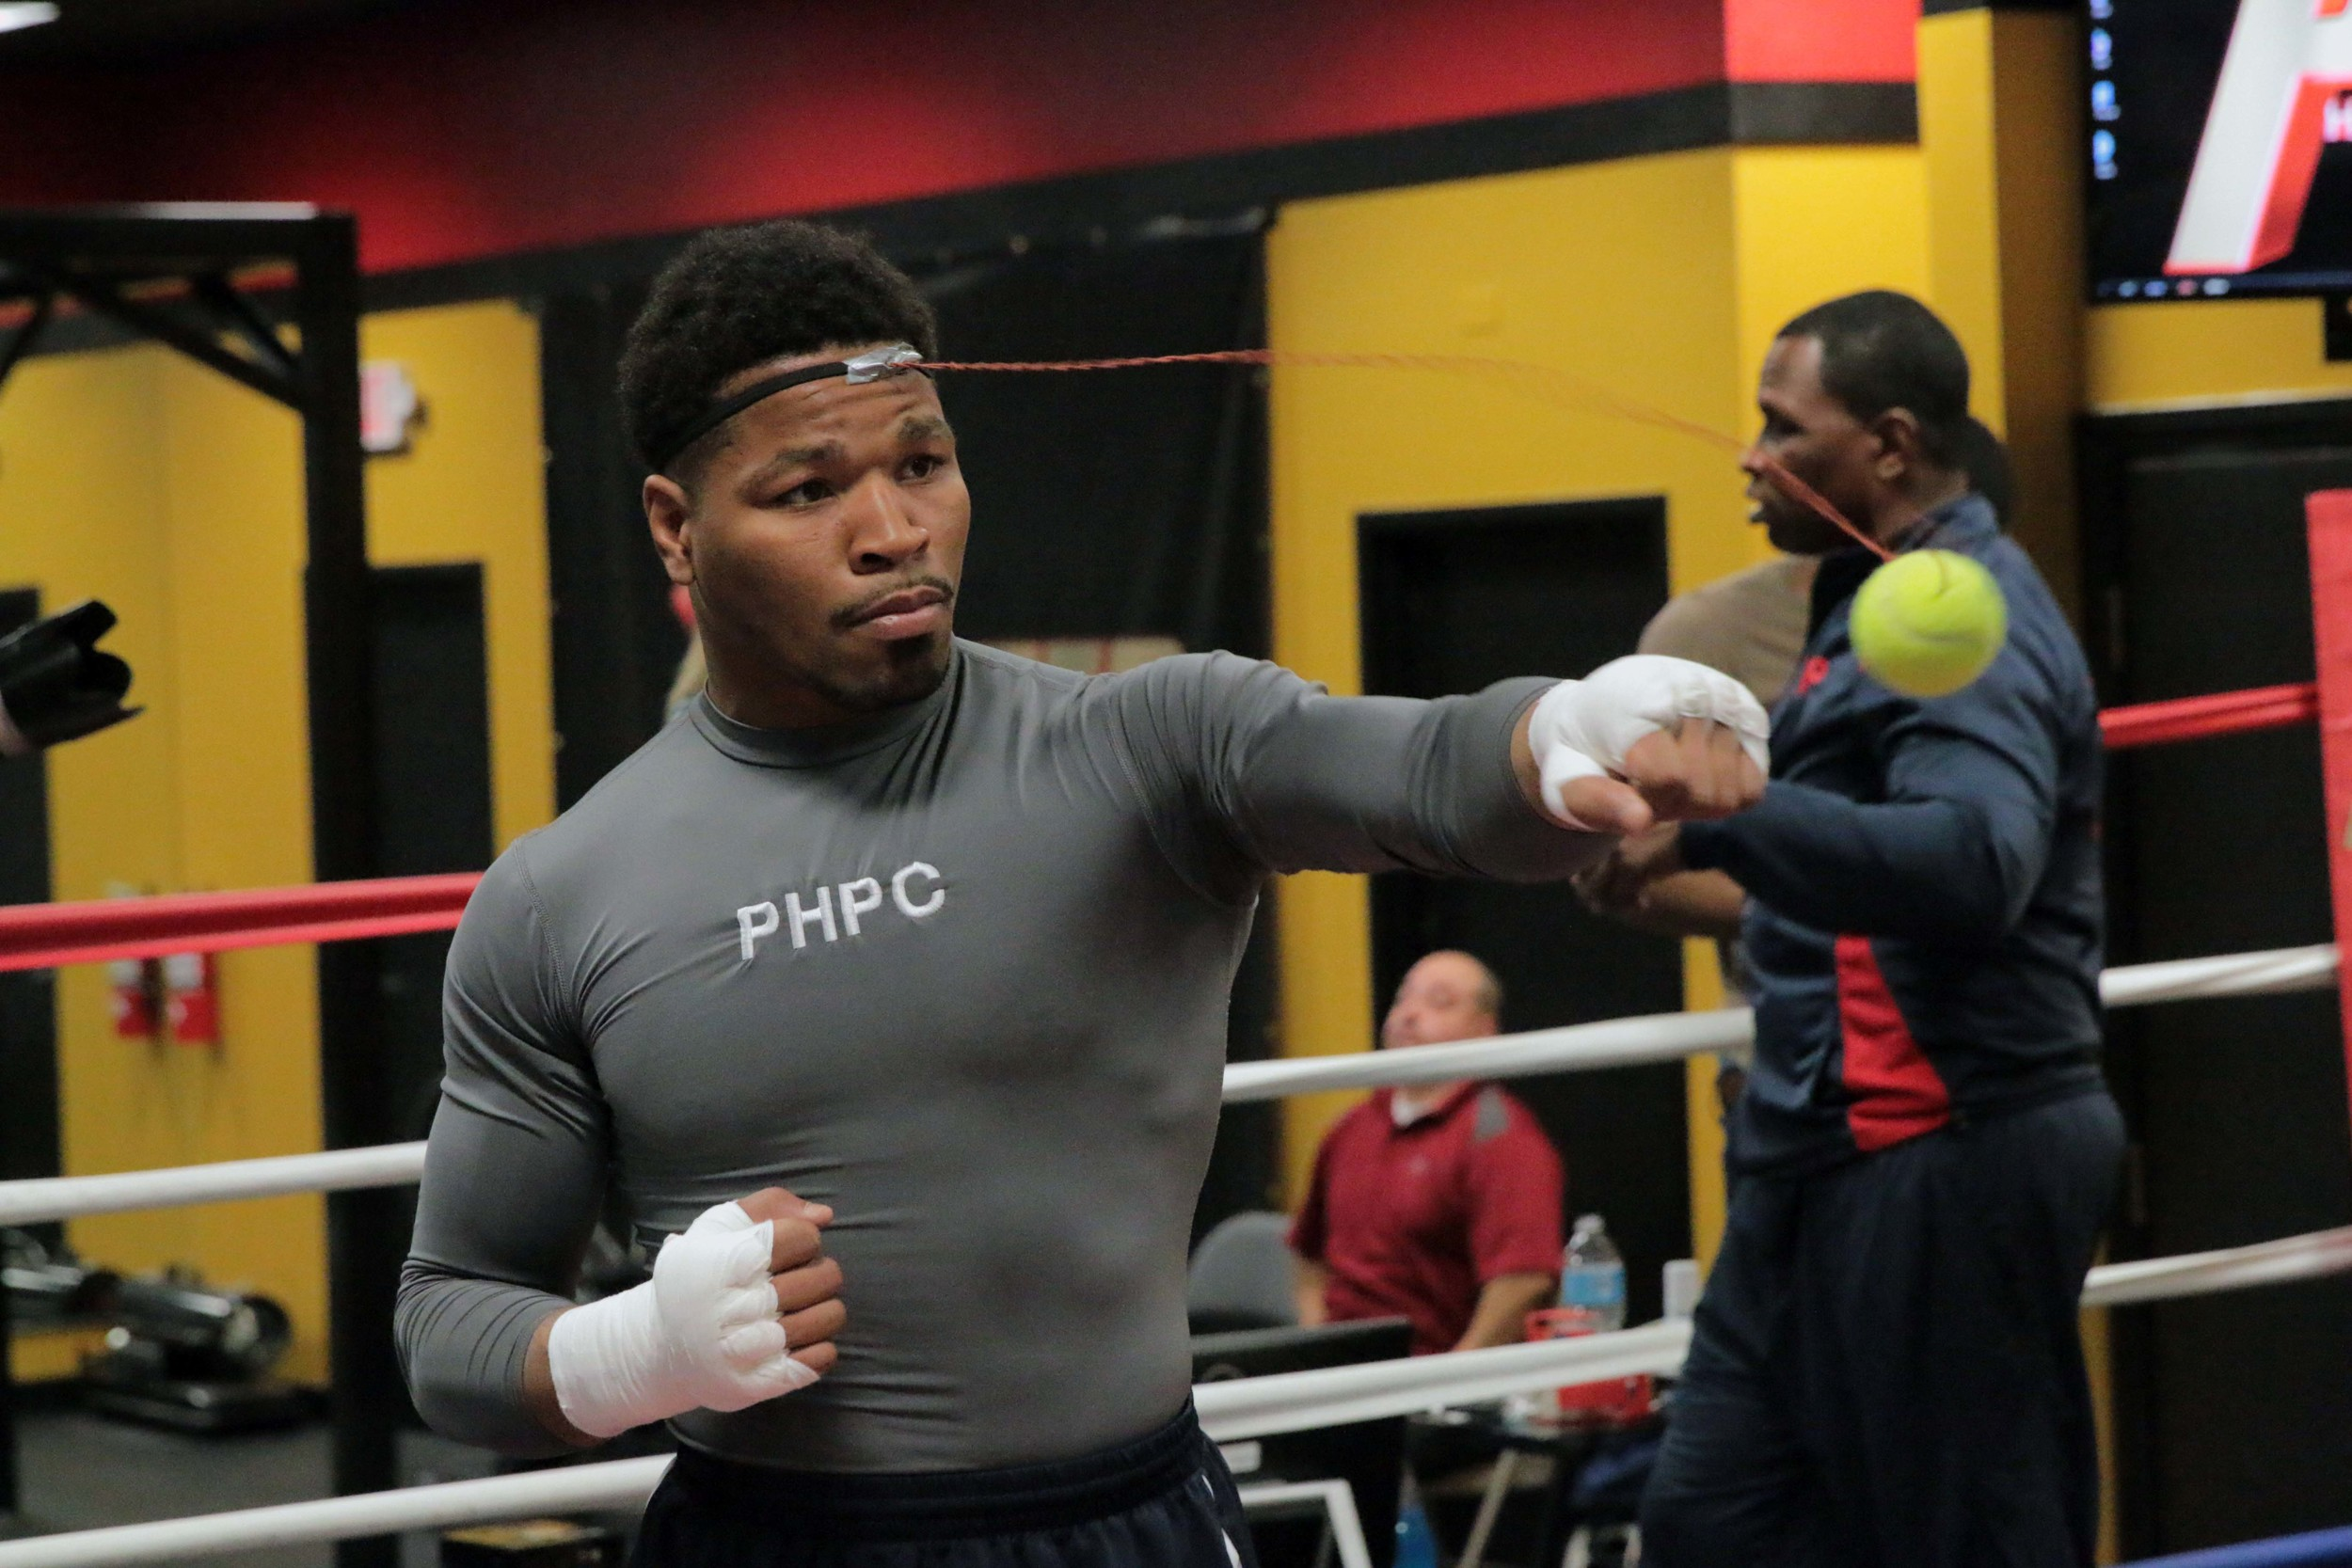 Shawn Porter prepares for his clash with Keith Thurman March 12 on CBS. Photo credit: Premier Boxing Champions